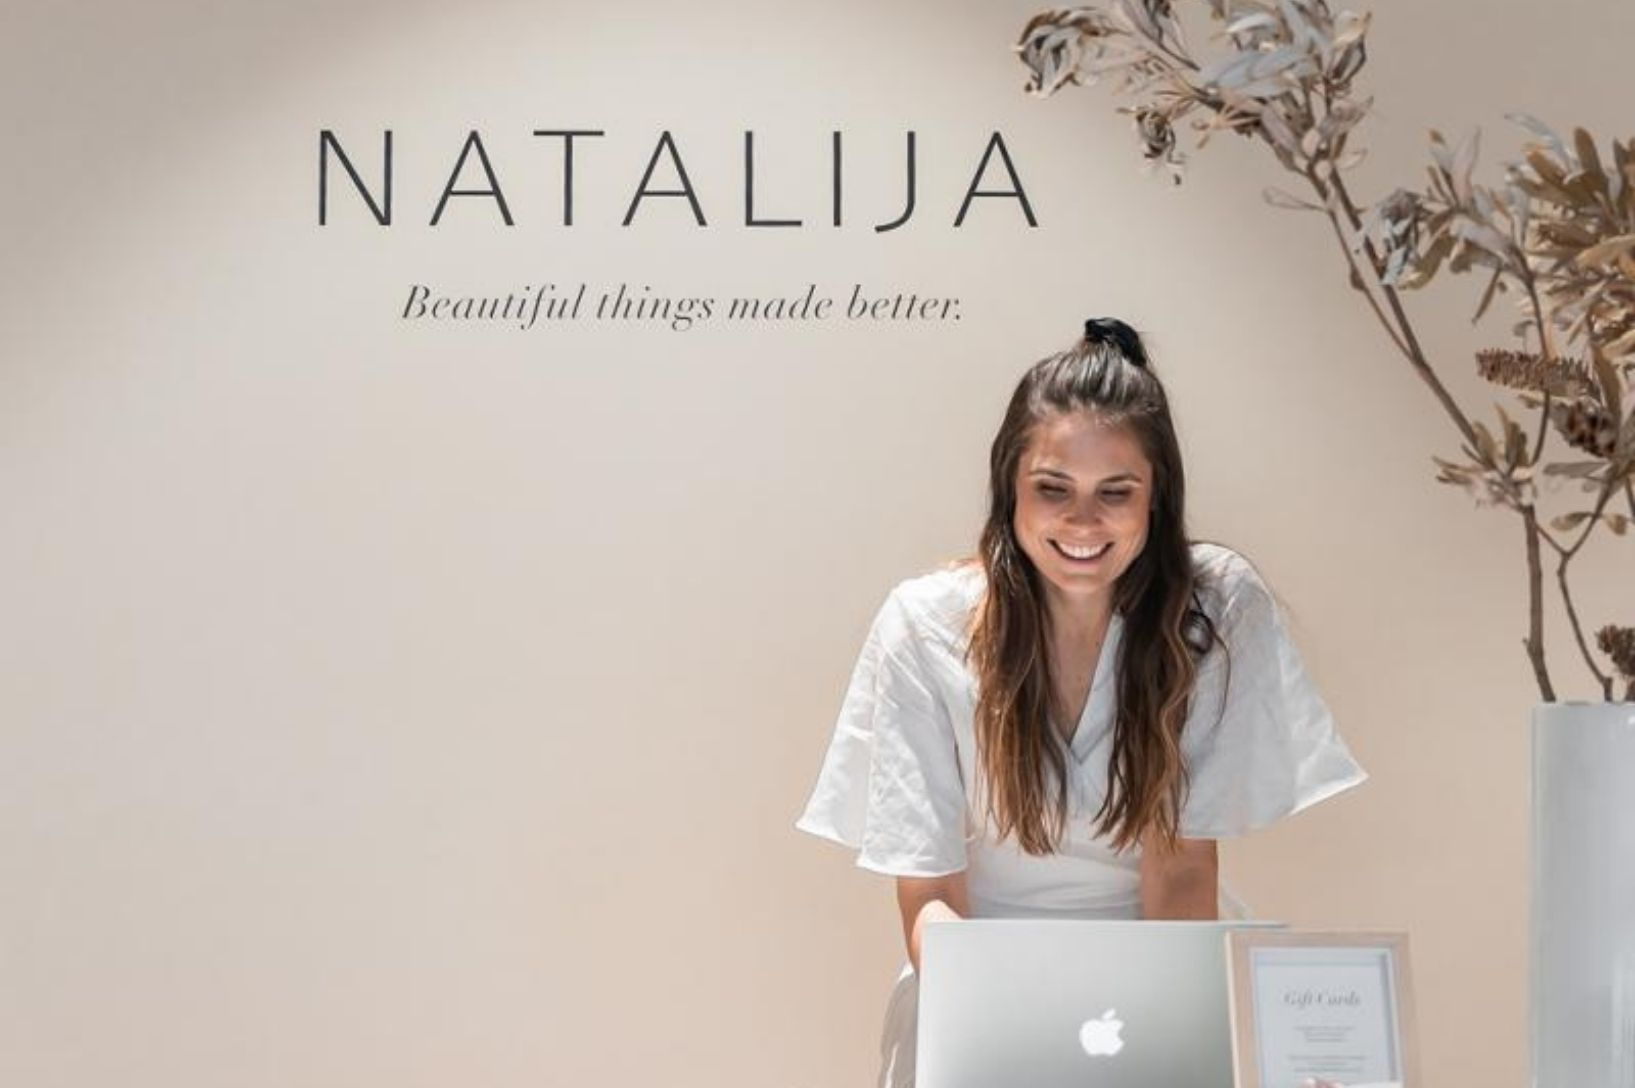 From a 9-5 to working with purpose with NATALIJA founder, Natalija Bouropoulos.